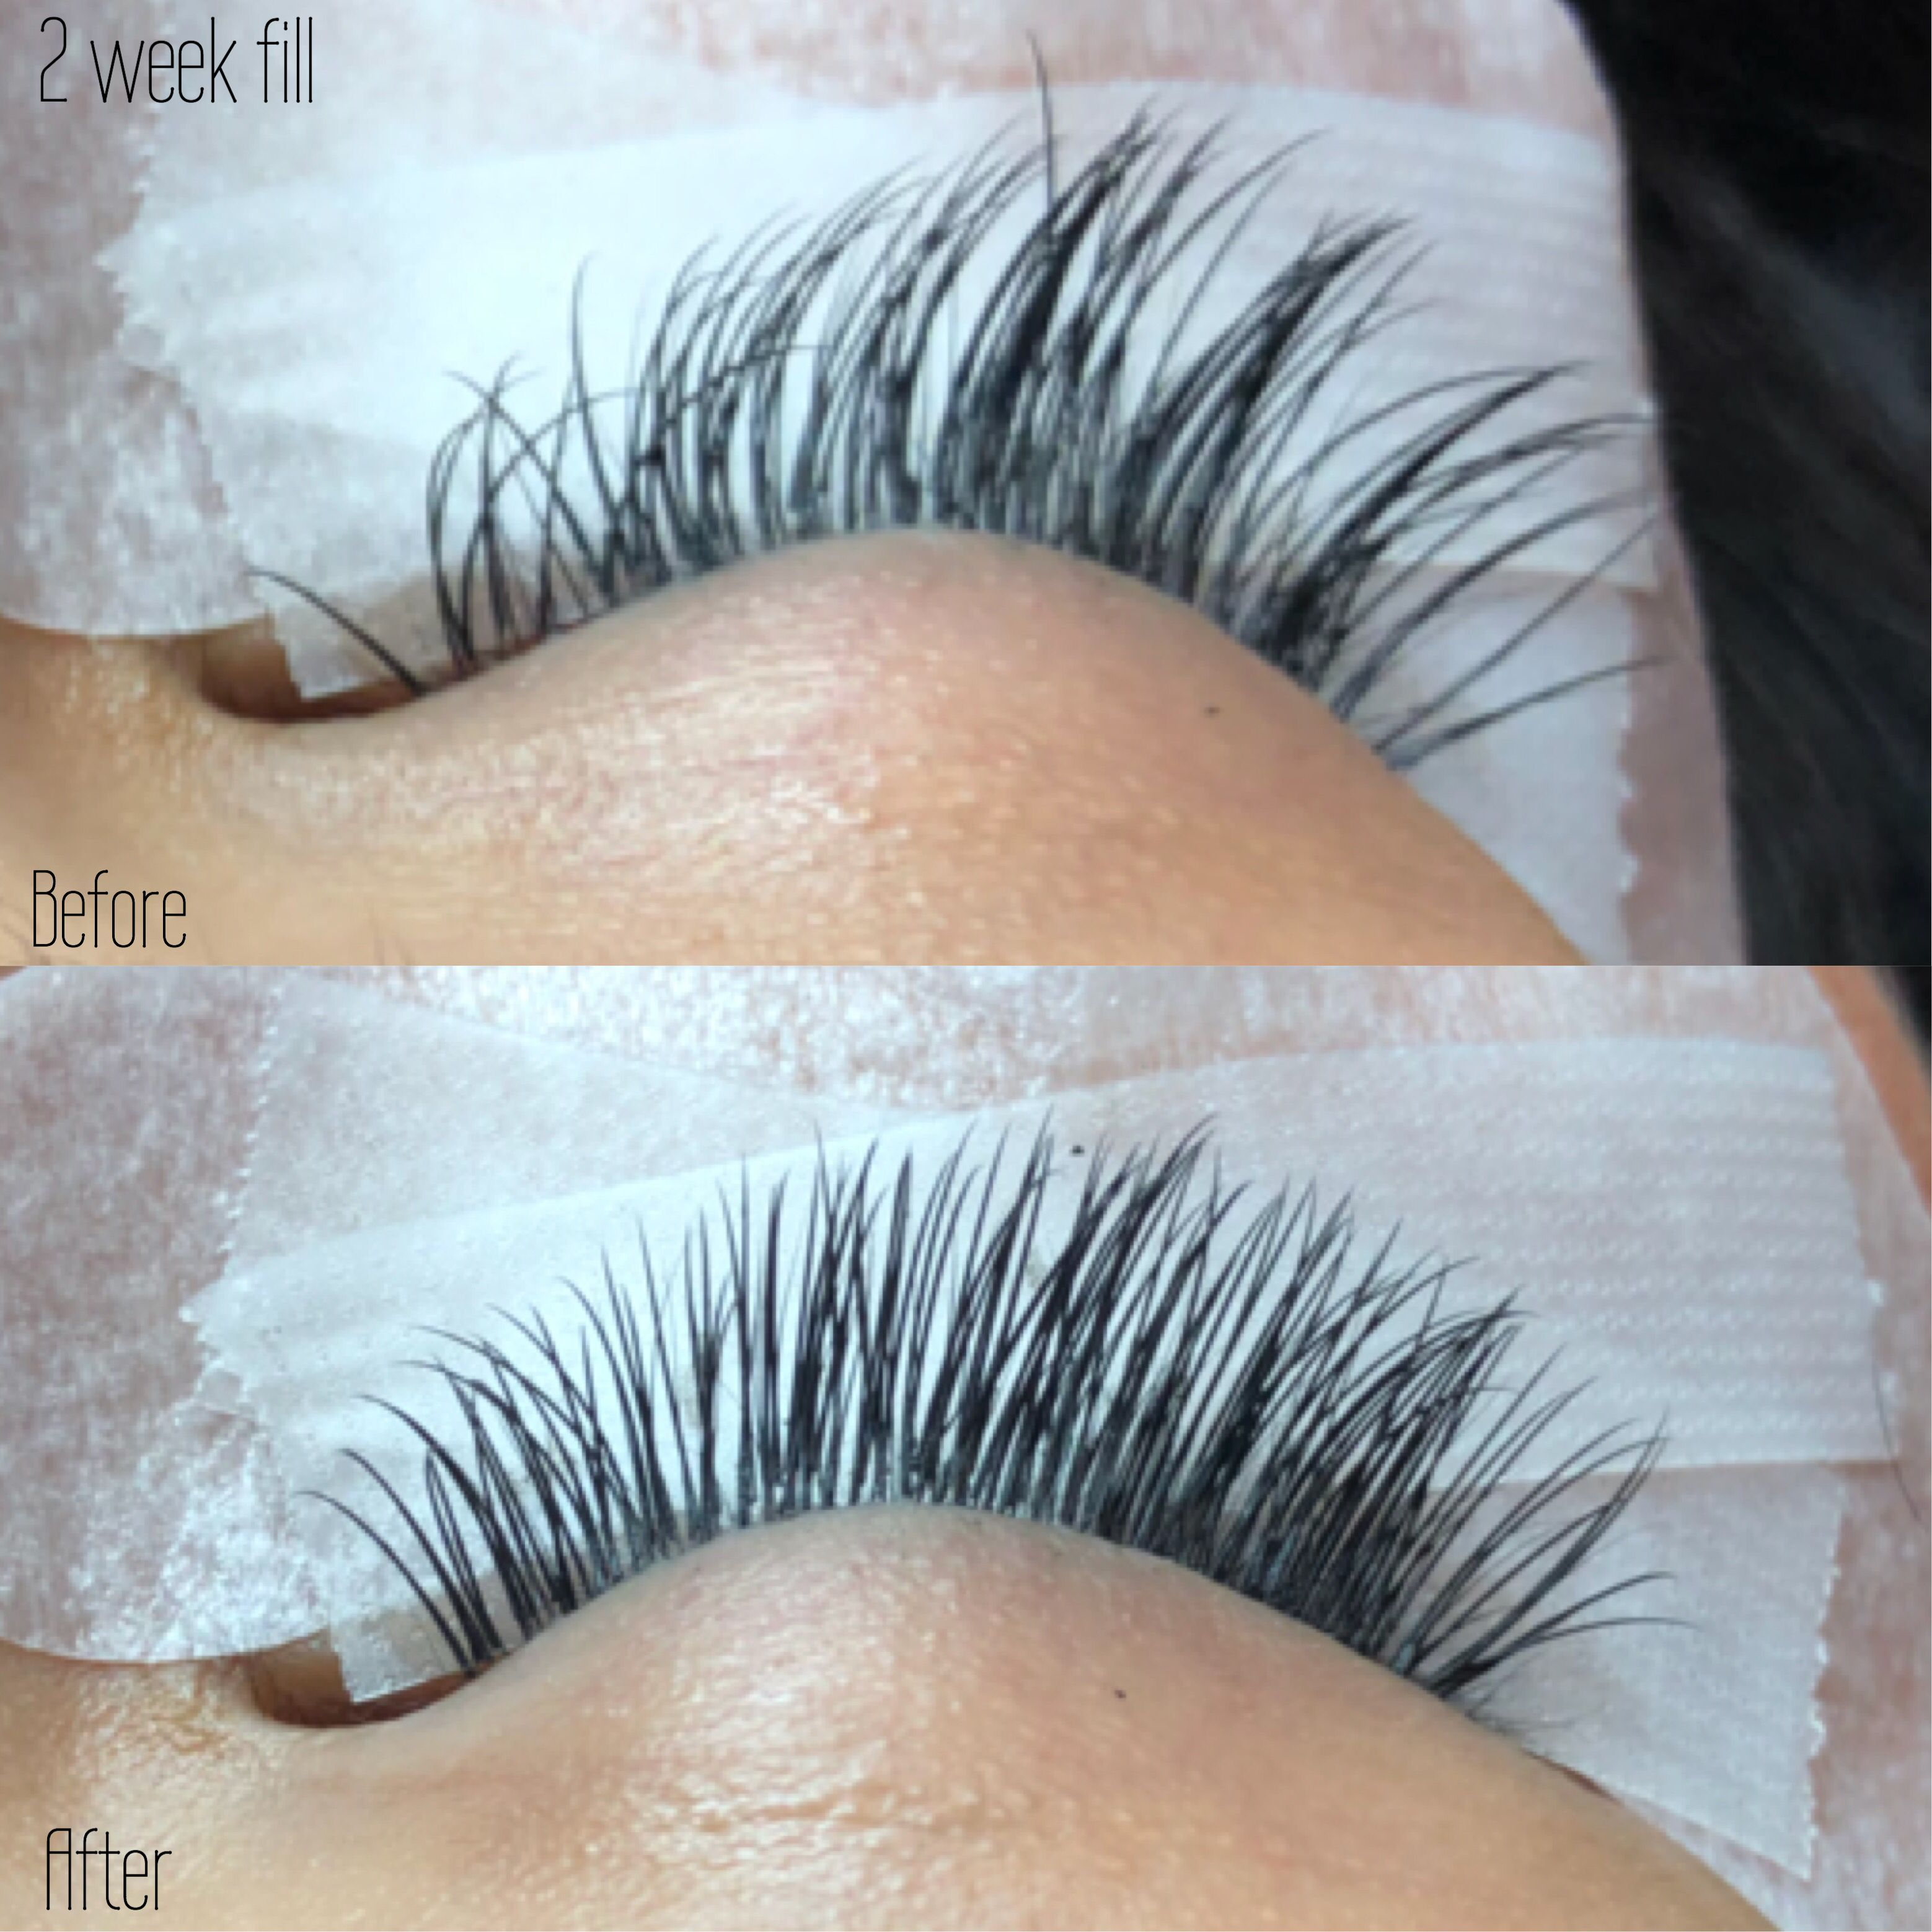 Before and after 2 week Classic Lash Extension fill | Lash